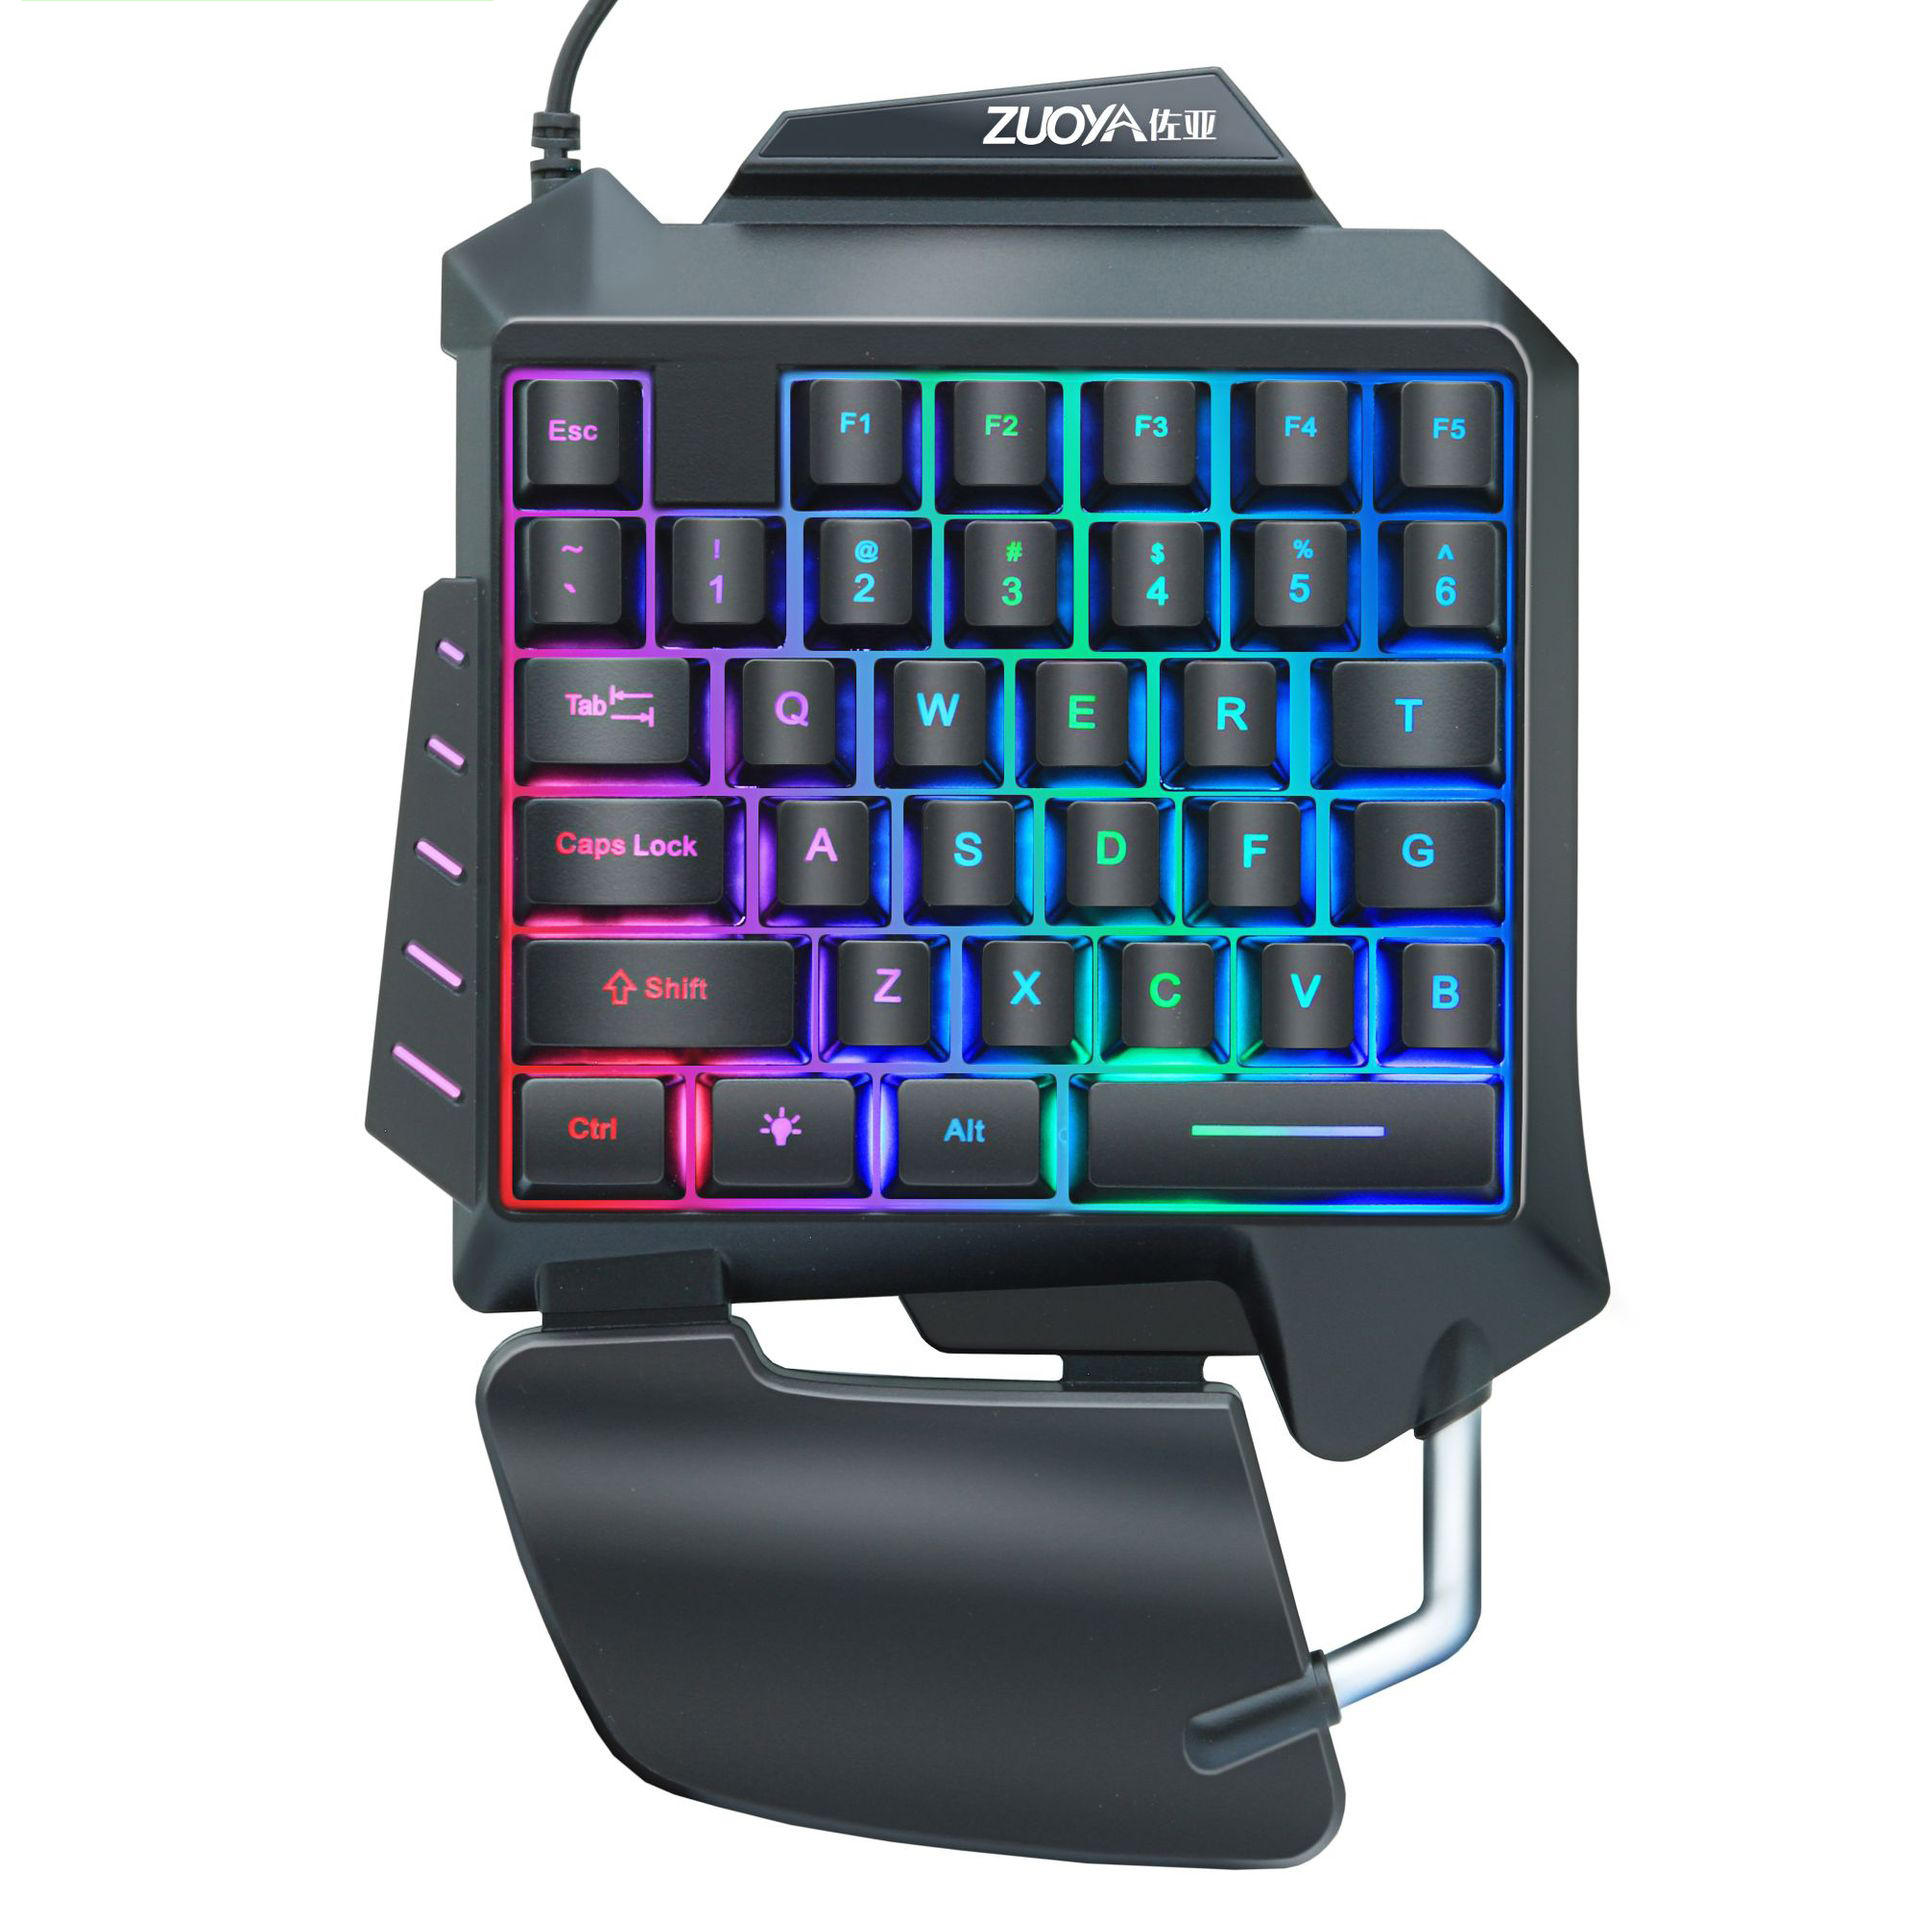 ZUOYA G92 Wired Single Handed RGB Gaming Membrane Keyboard 35 Keys One Hand Ergonomic Game Keypad for PC Laptop Pro PUBG Gamer